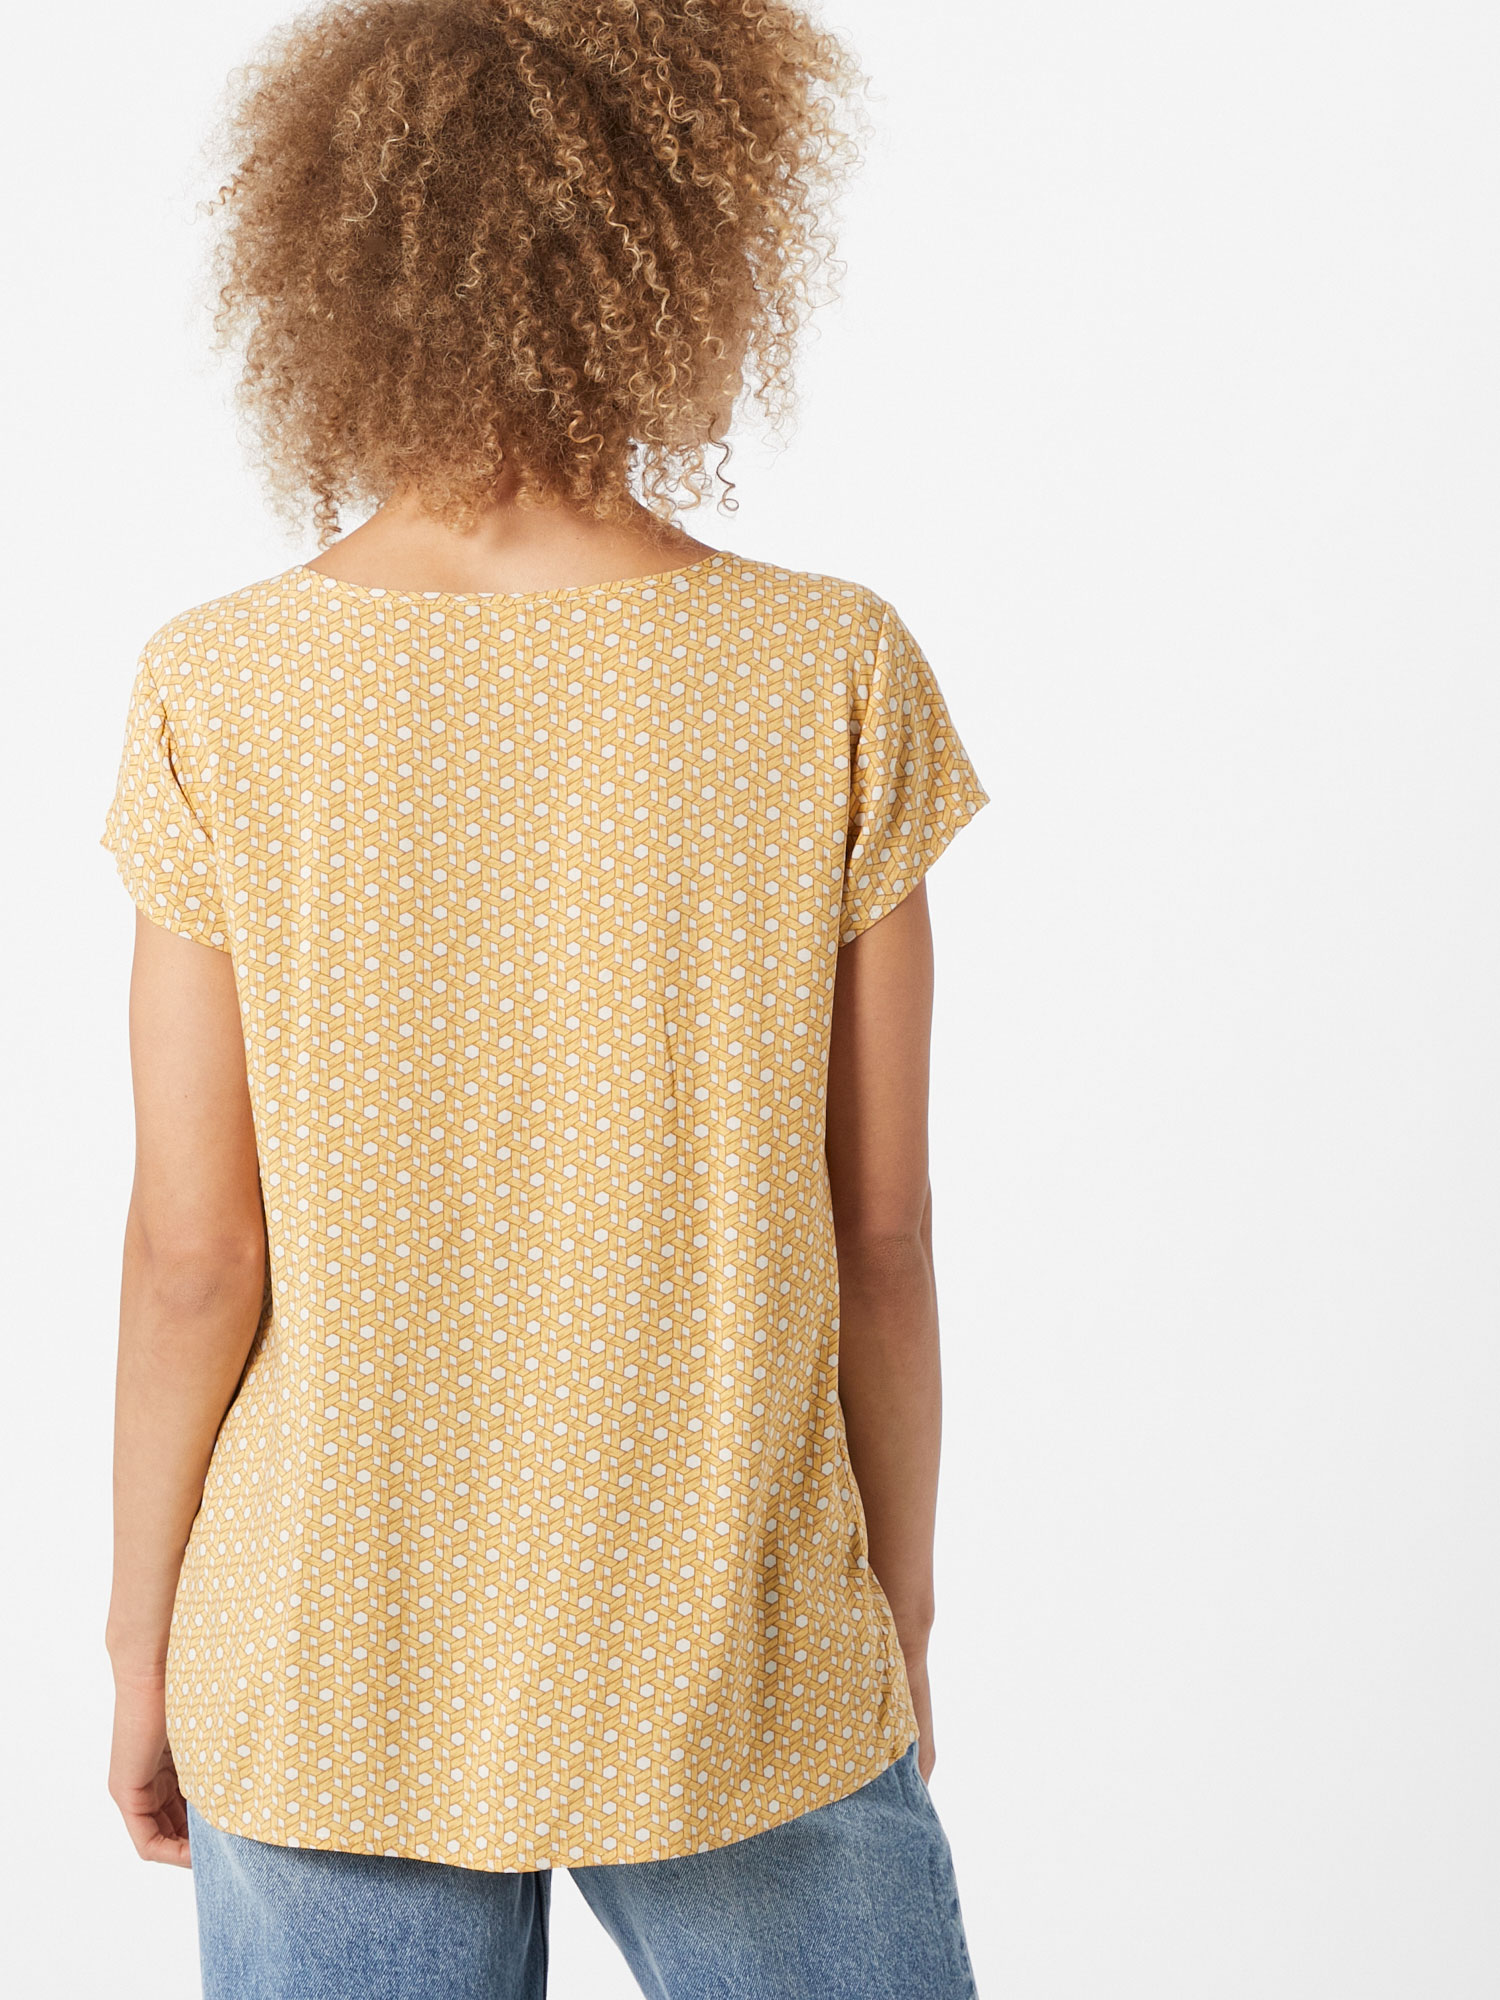 Soyaconcept Blouse 'Iggy 1' in Geel / Wit vFRkXg8f